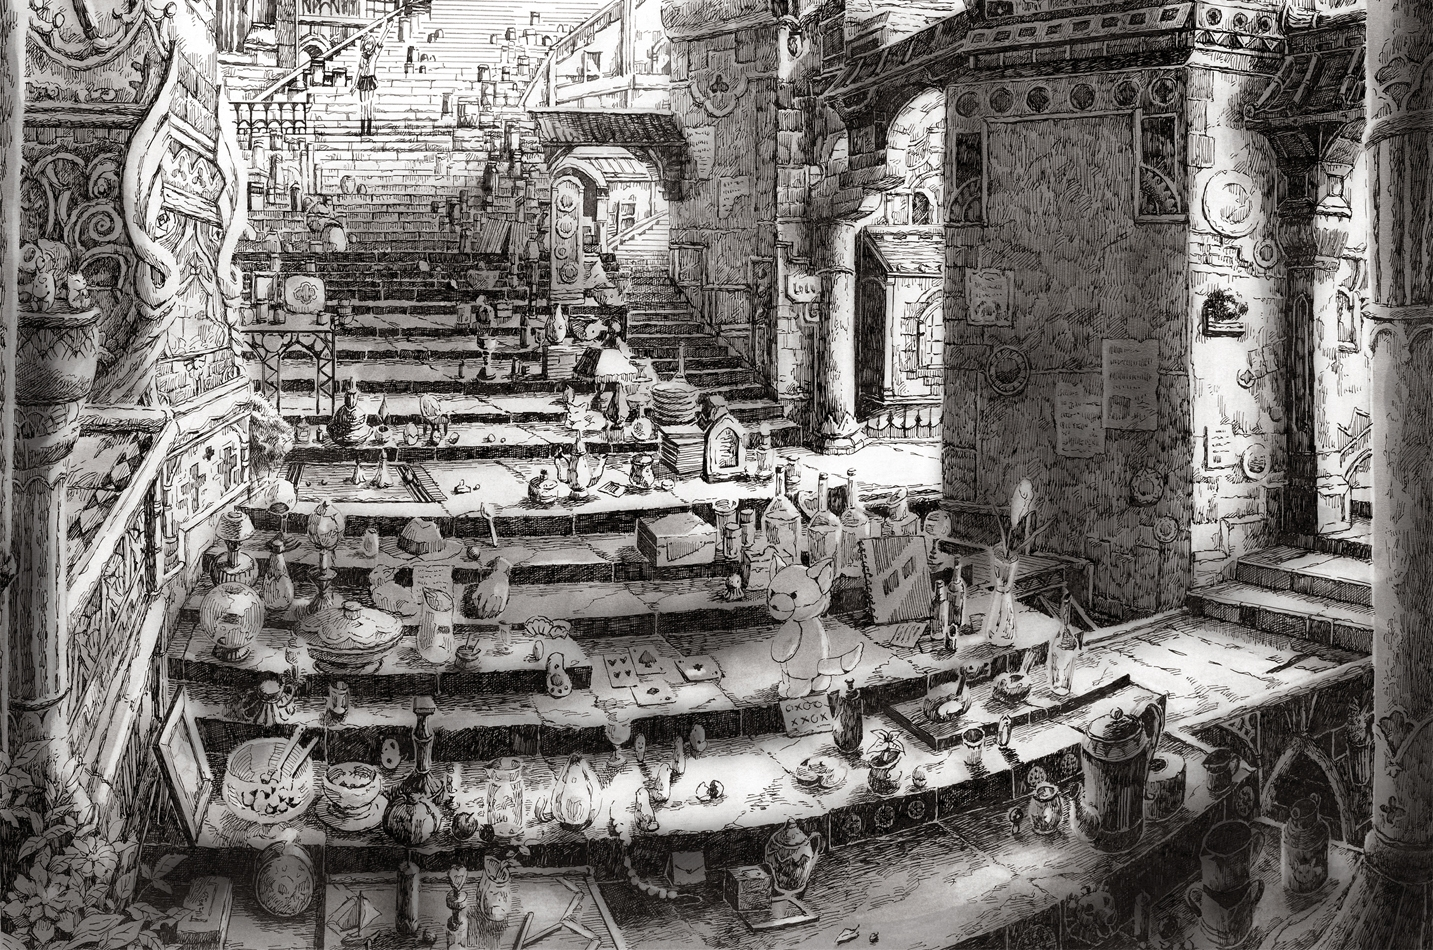 22-Precious-Chaos-Mita-Mitauzo-実-田-く-ら-Intricate-Japanese-Architectural-Drawings-www-designstack-co